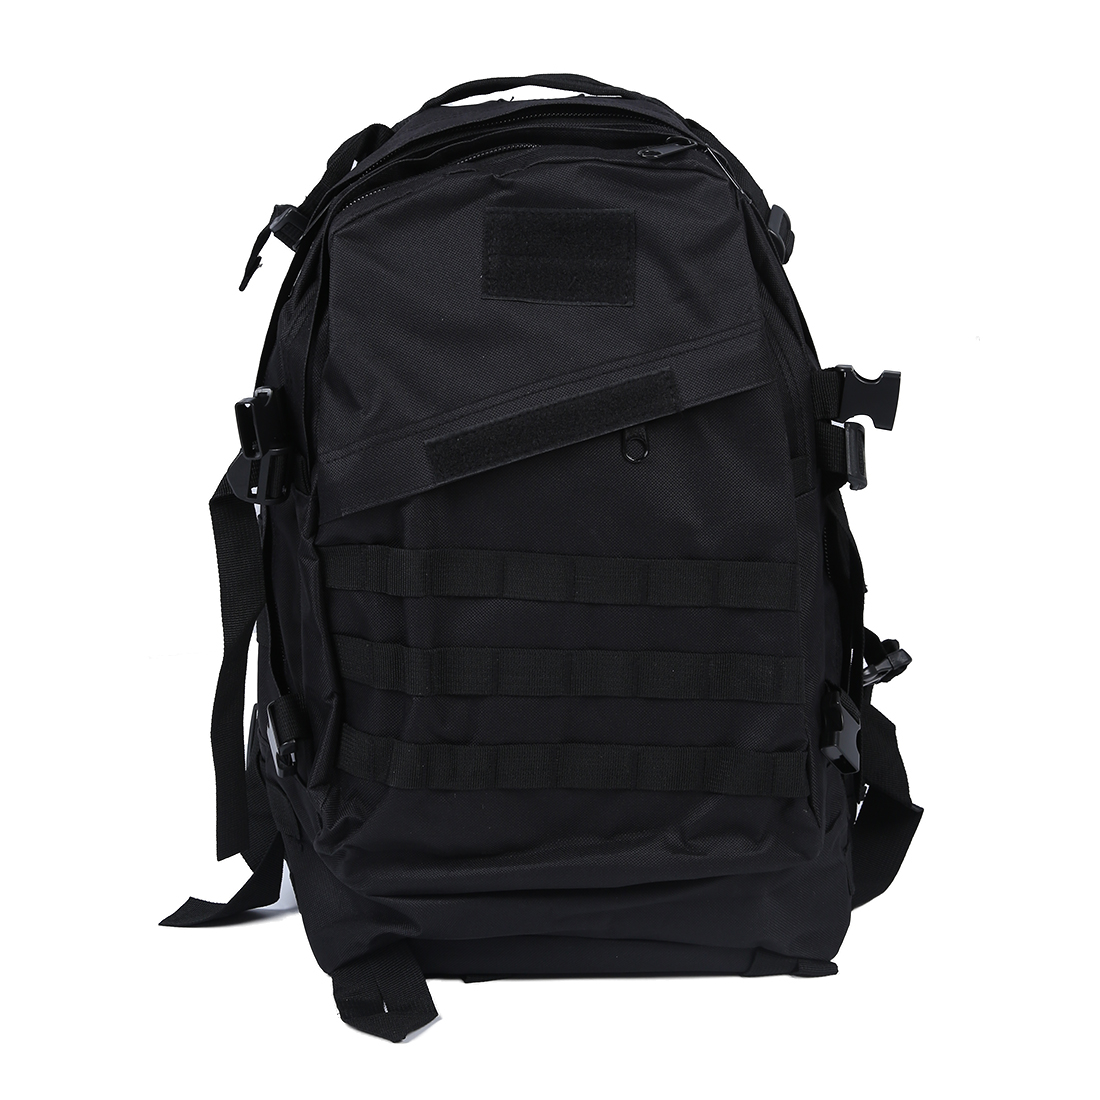 Military Tactical Backpack Backpack Camping Trip Hiking Bag 40L Black